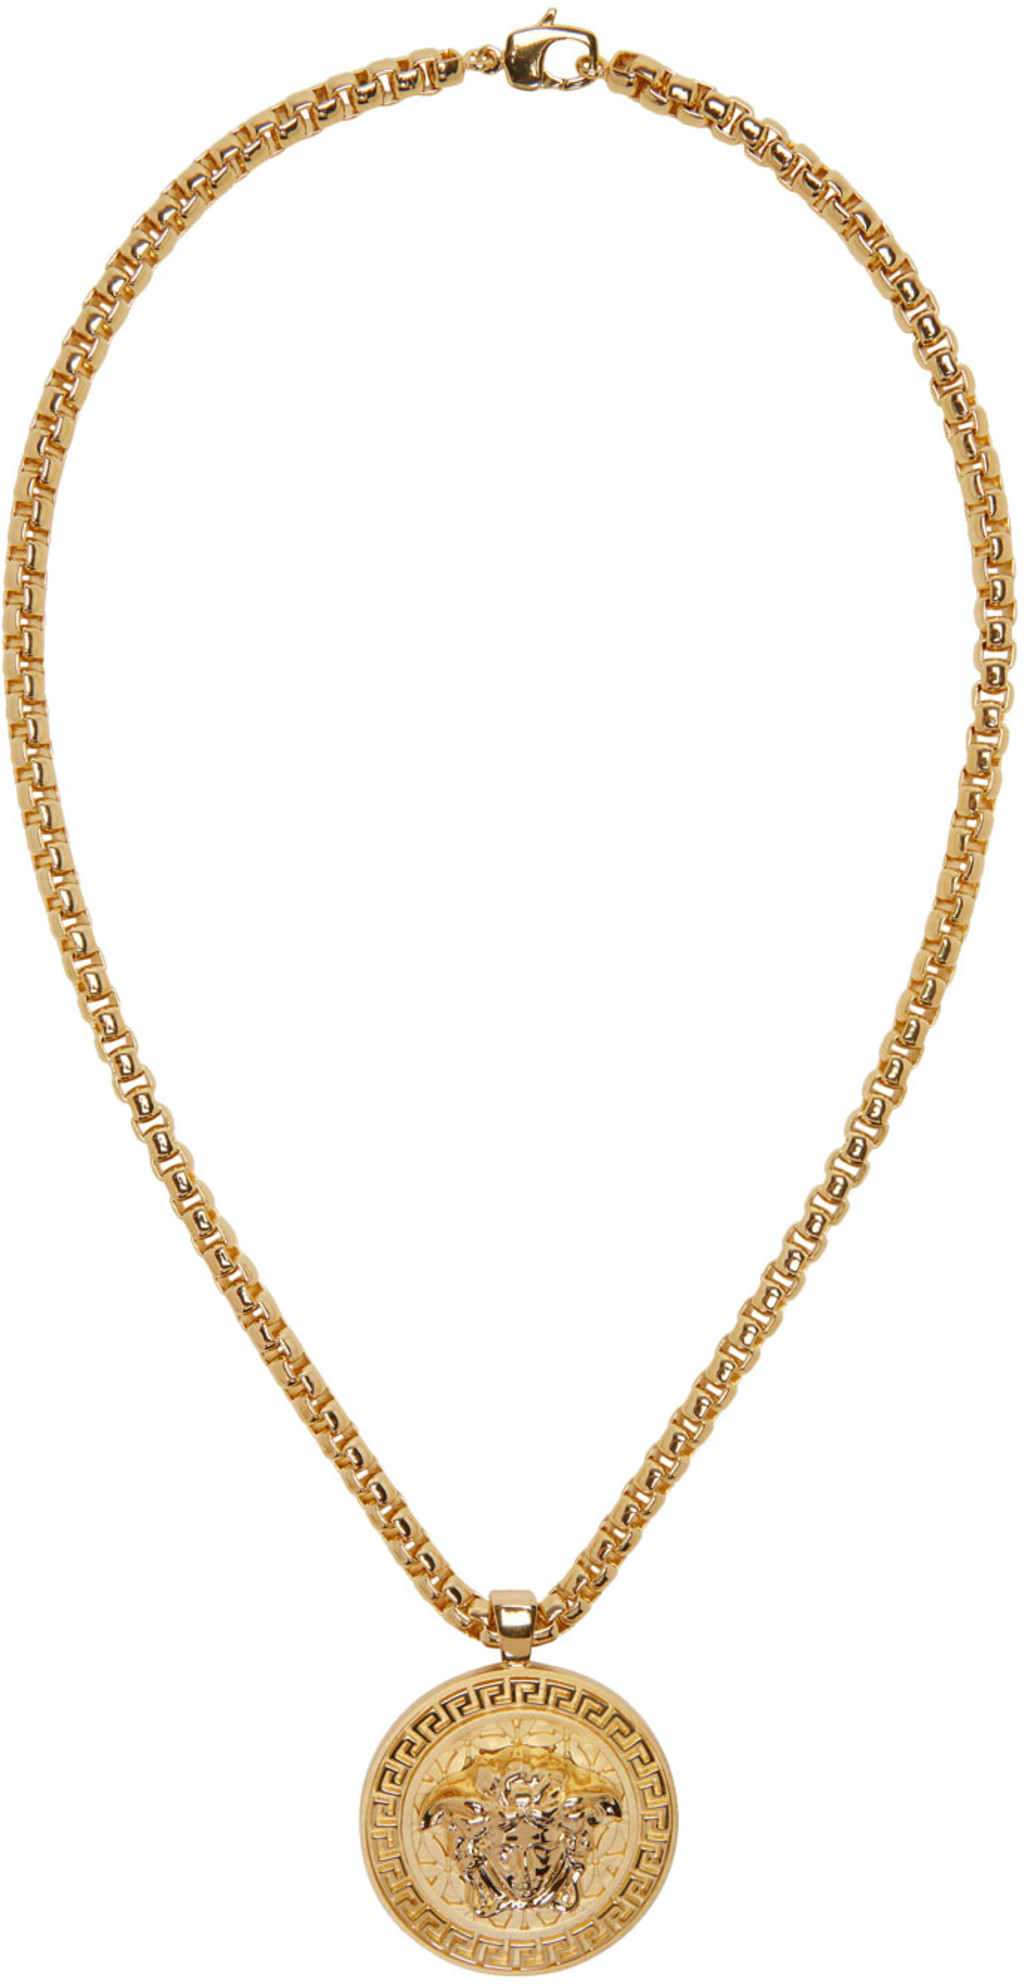 chain gold sale kim kardashian off gallery necklaces photo long listing as il two medallion fullxfull